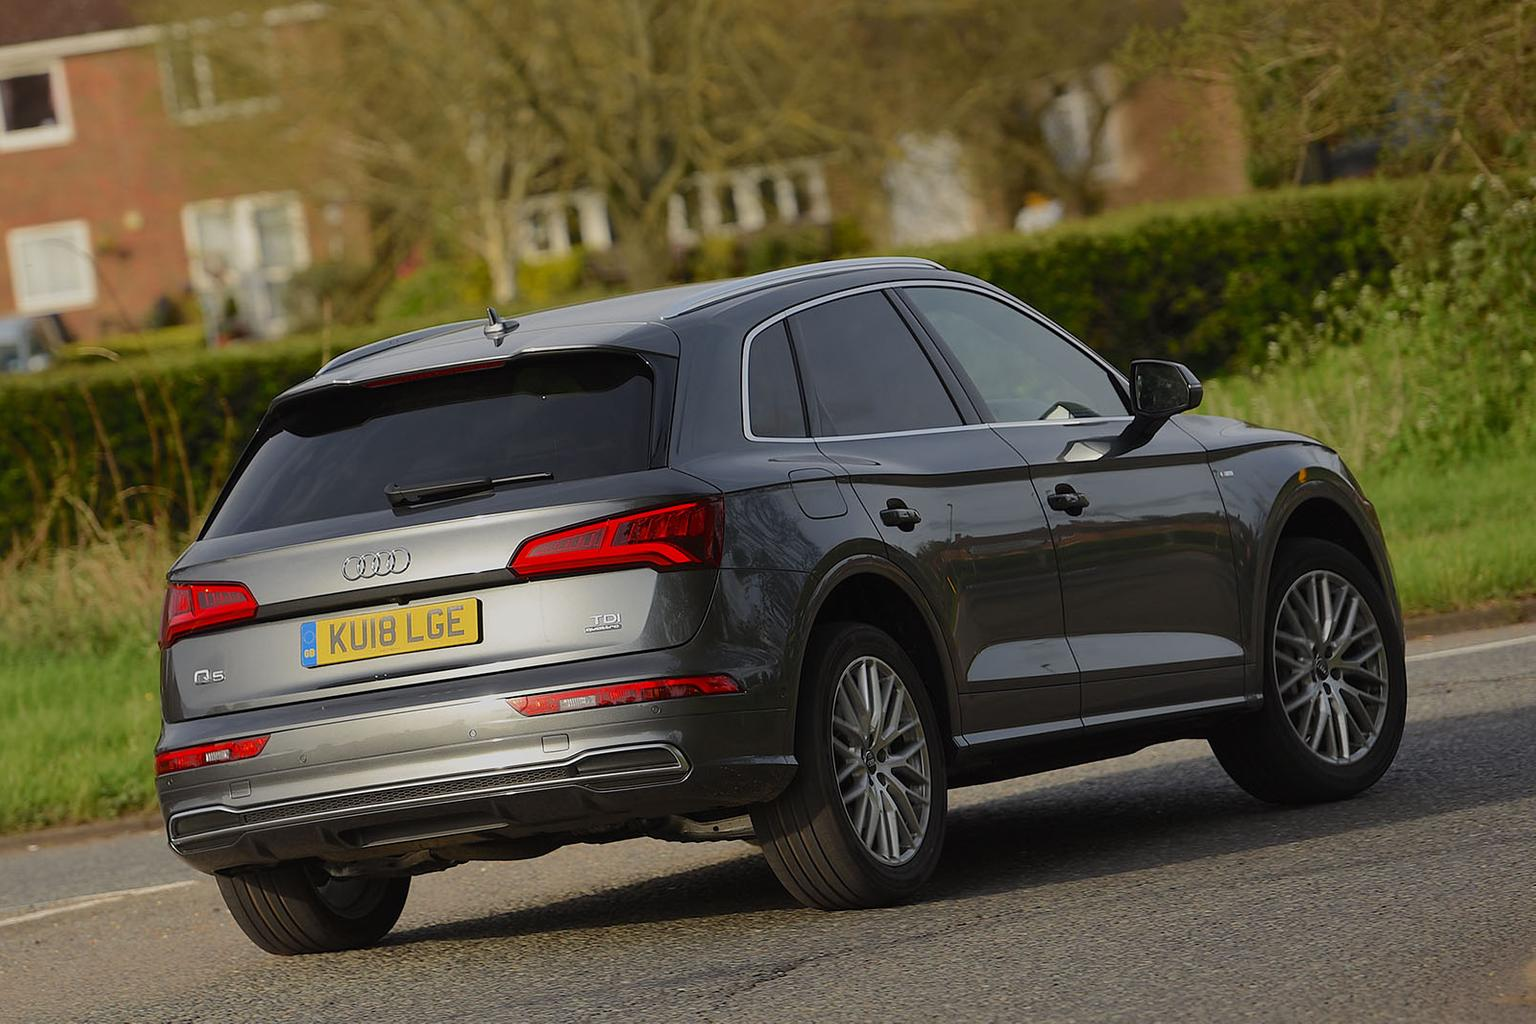 2018 Audi Q5 3.0 TDI review  - price, specs and release date